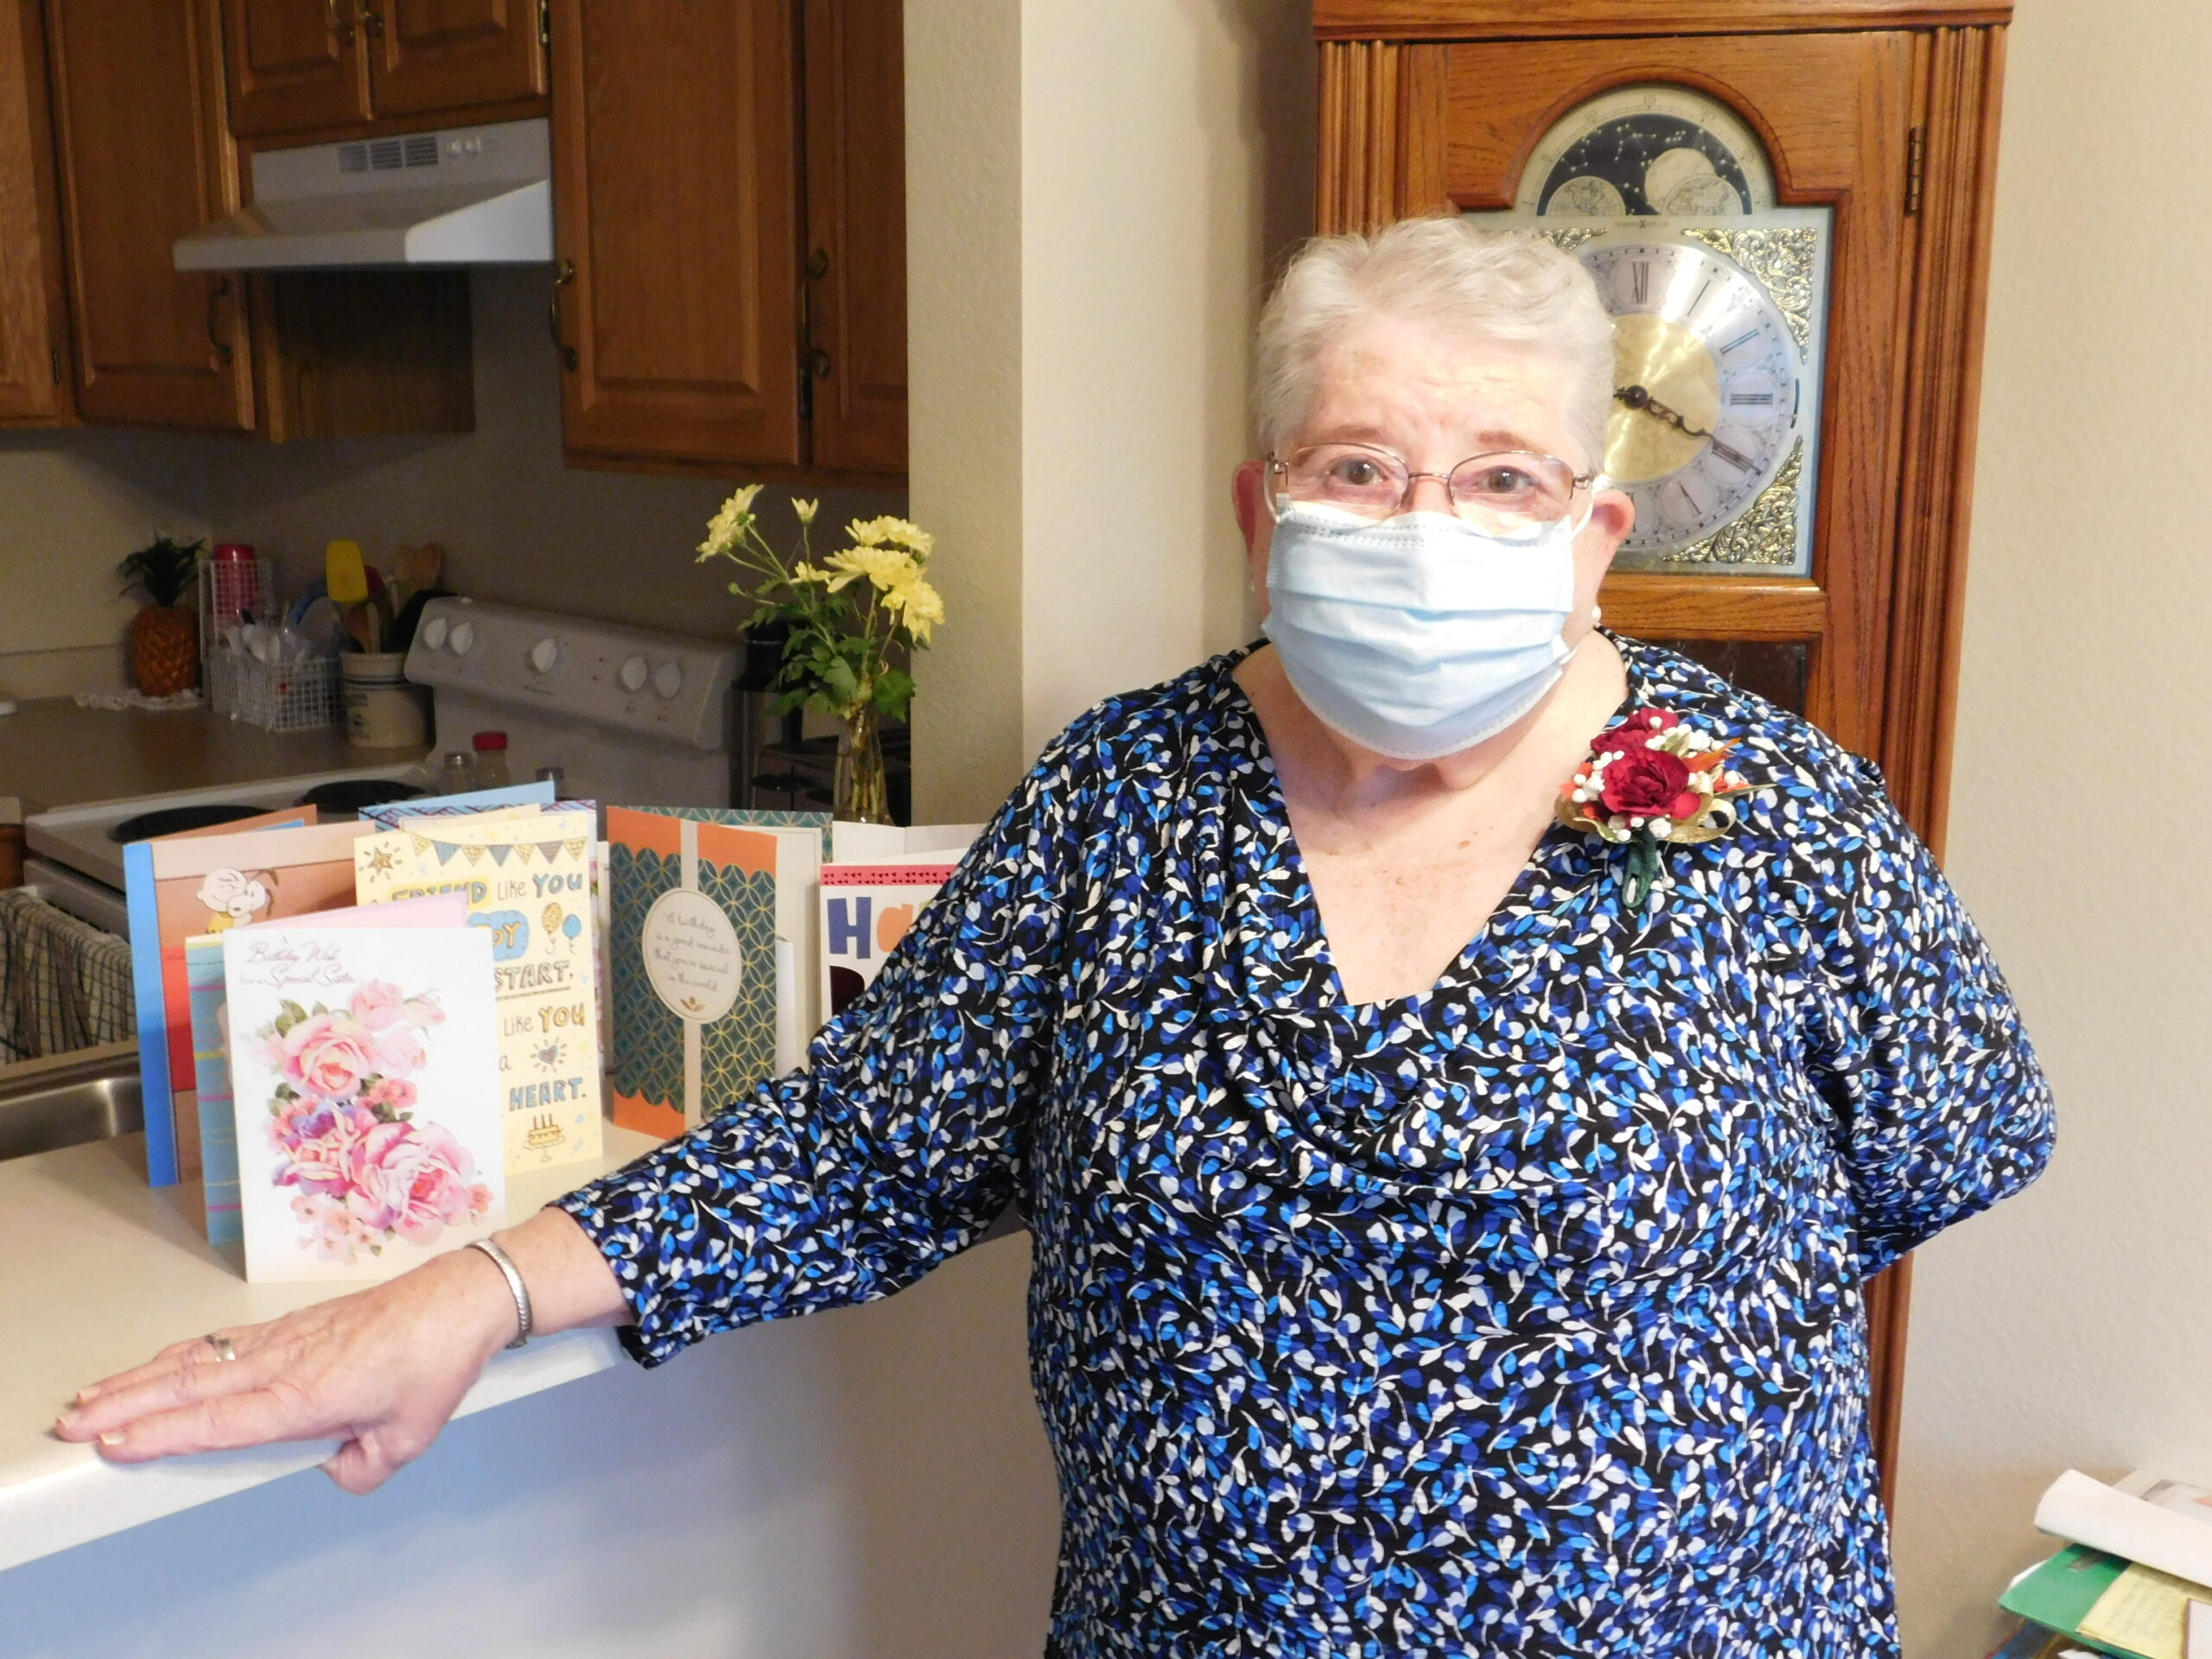 Roberta celebrated her birthday Covid-style.  Mask, corsage and cards from Friends.  These Residents are